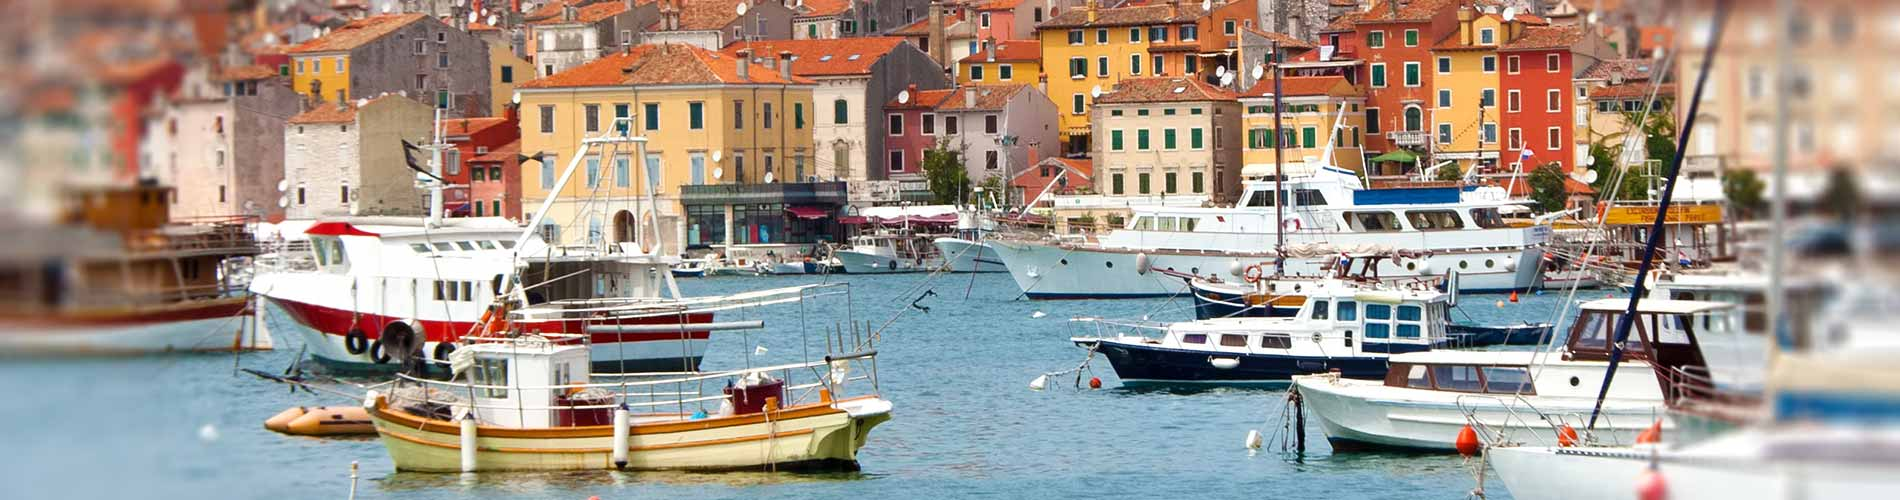 Rovinj and sea port.jpg